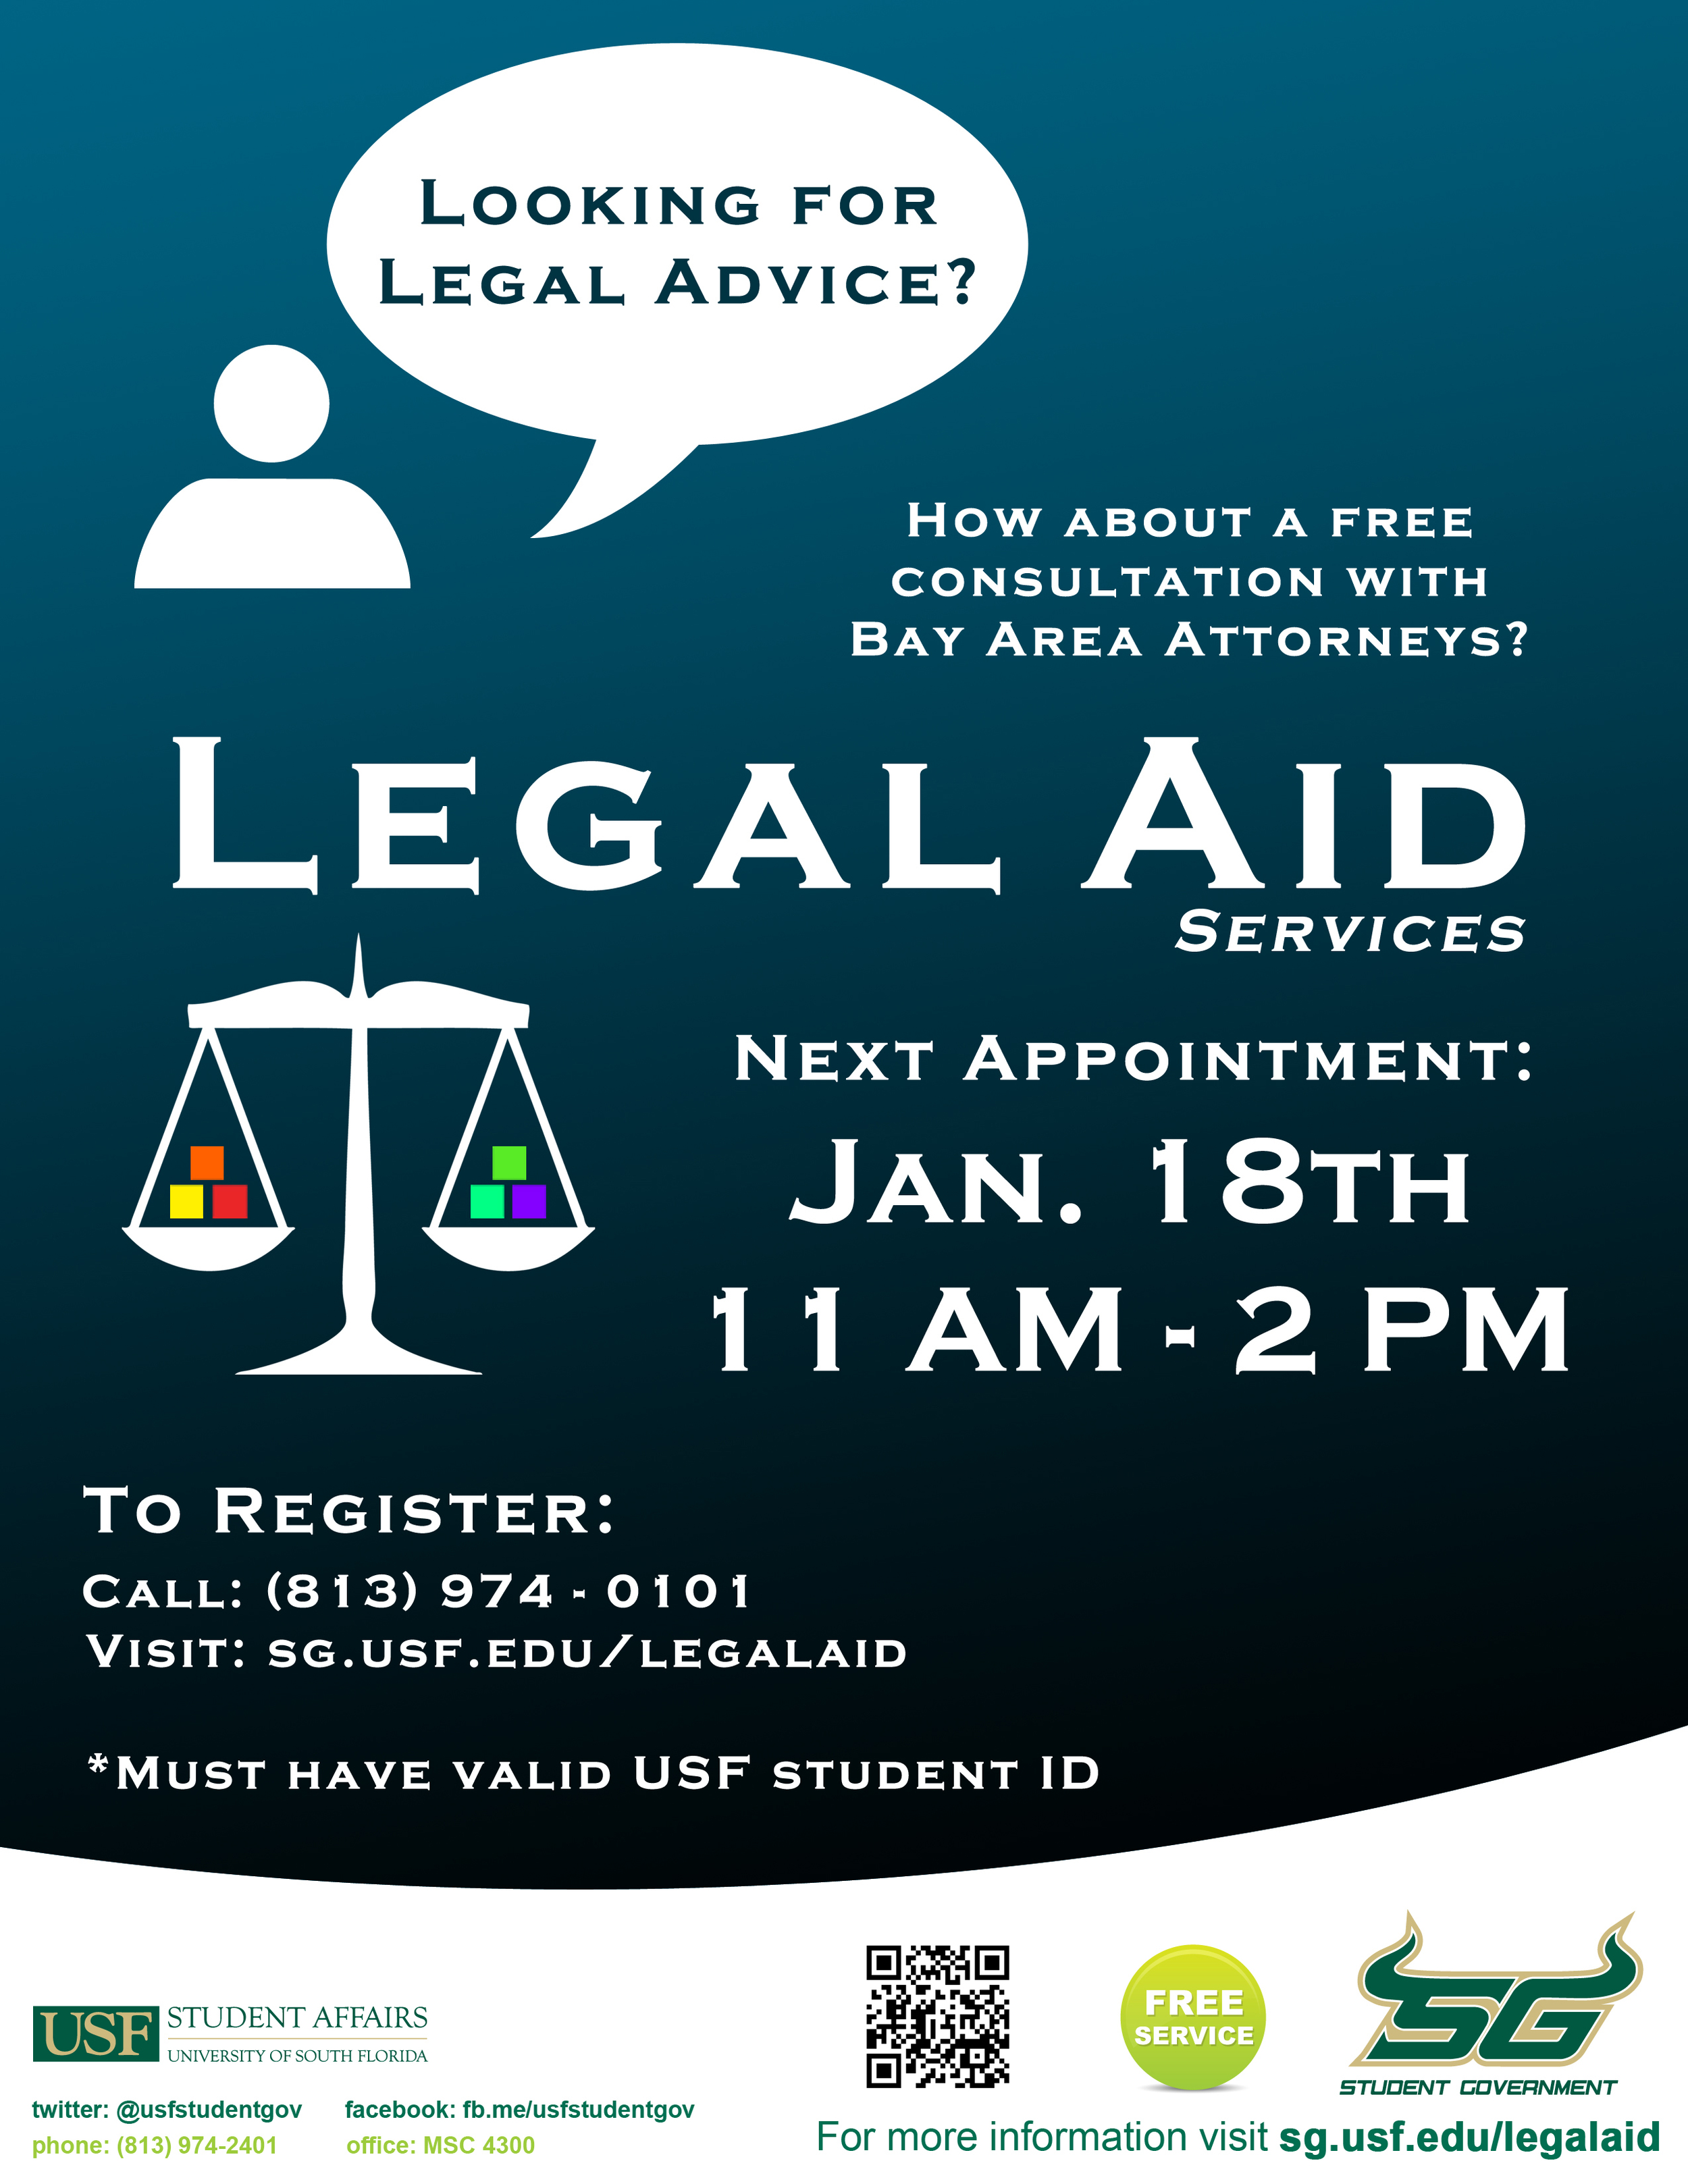 010412 - Legal Aid Redesign Draft 3.jpg